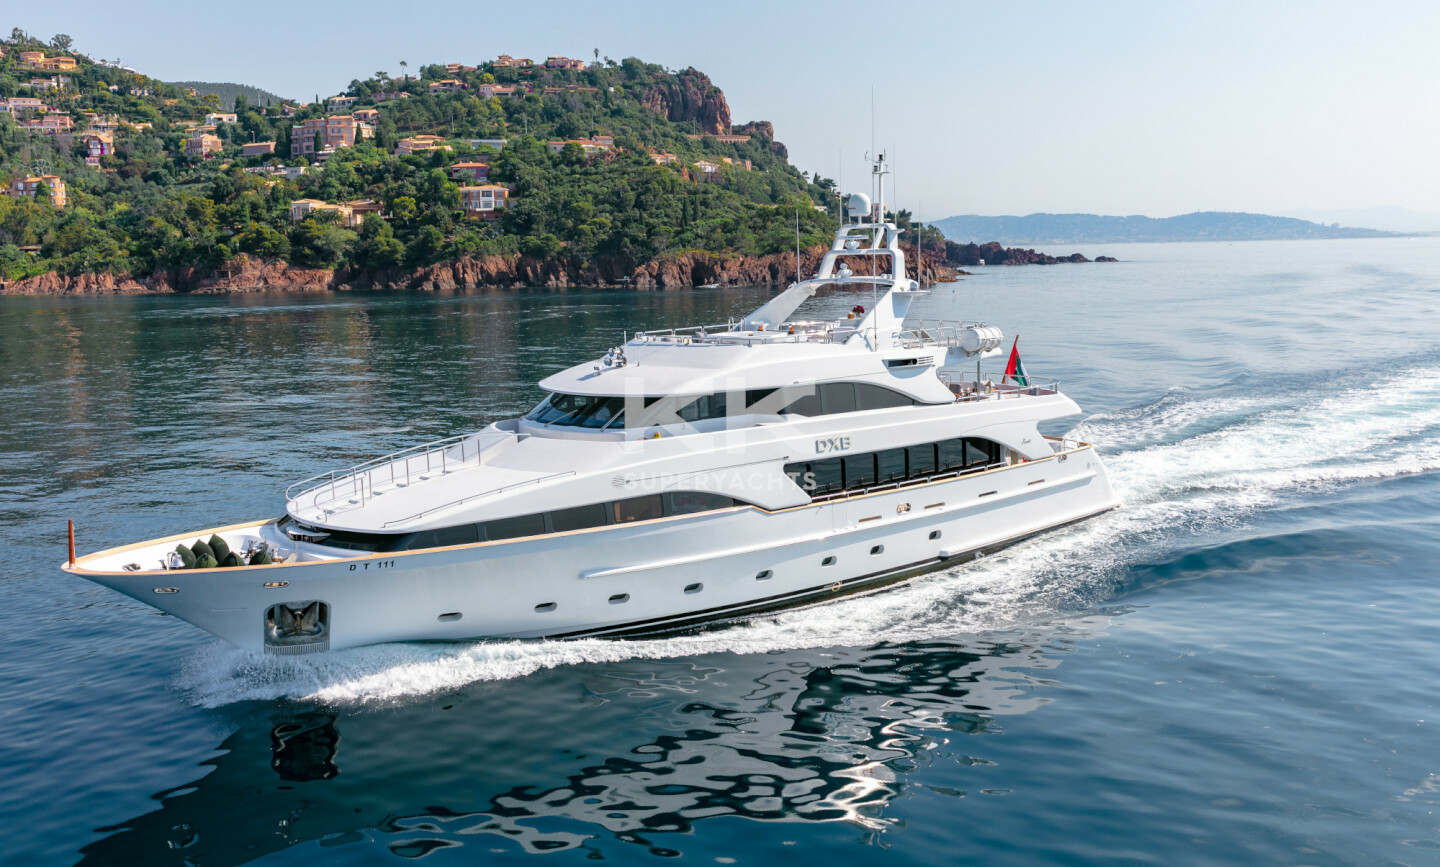 DXB yacht for Charter 2